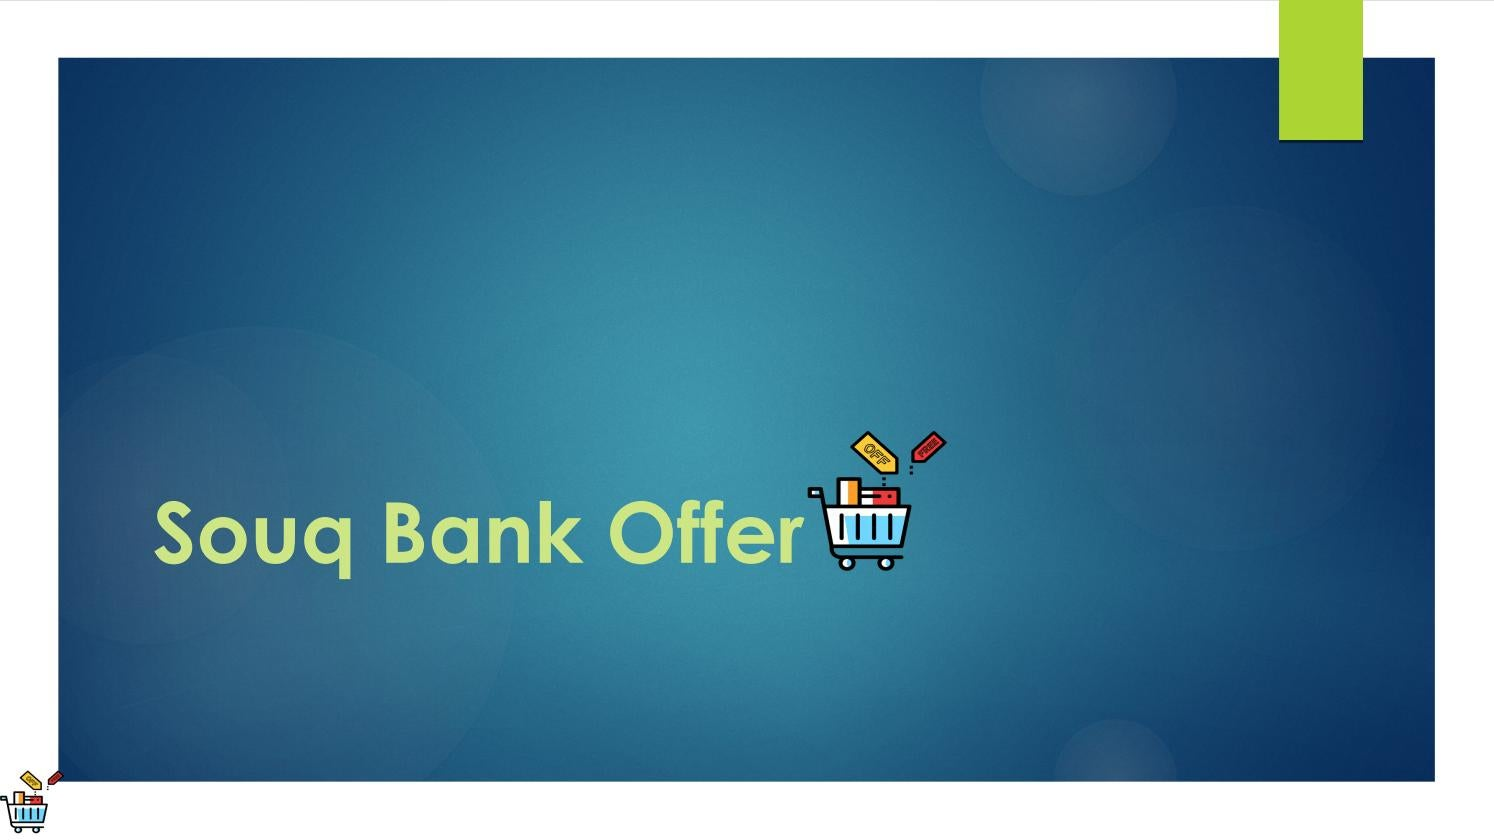 Souq Bank Offer by Raveena Arora - issuu